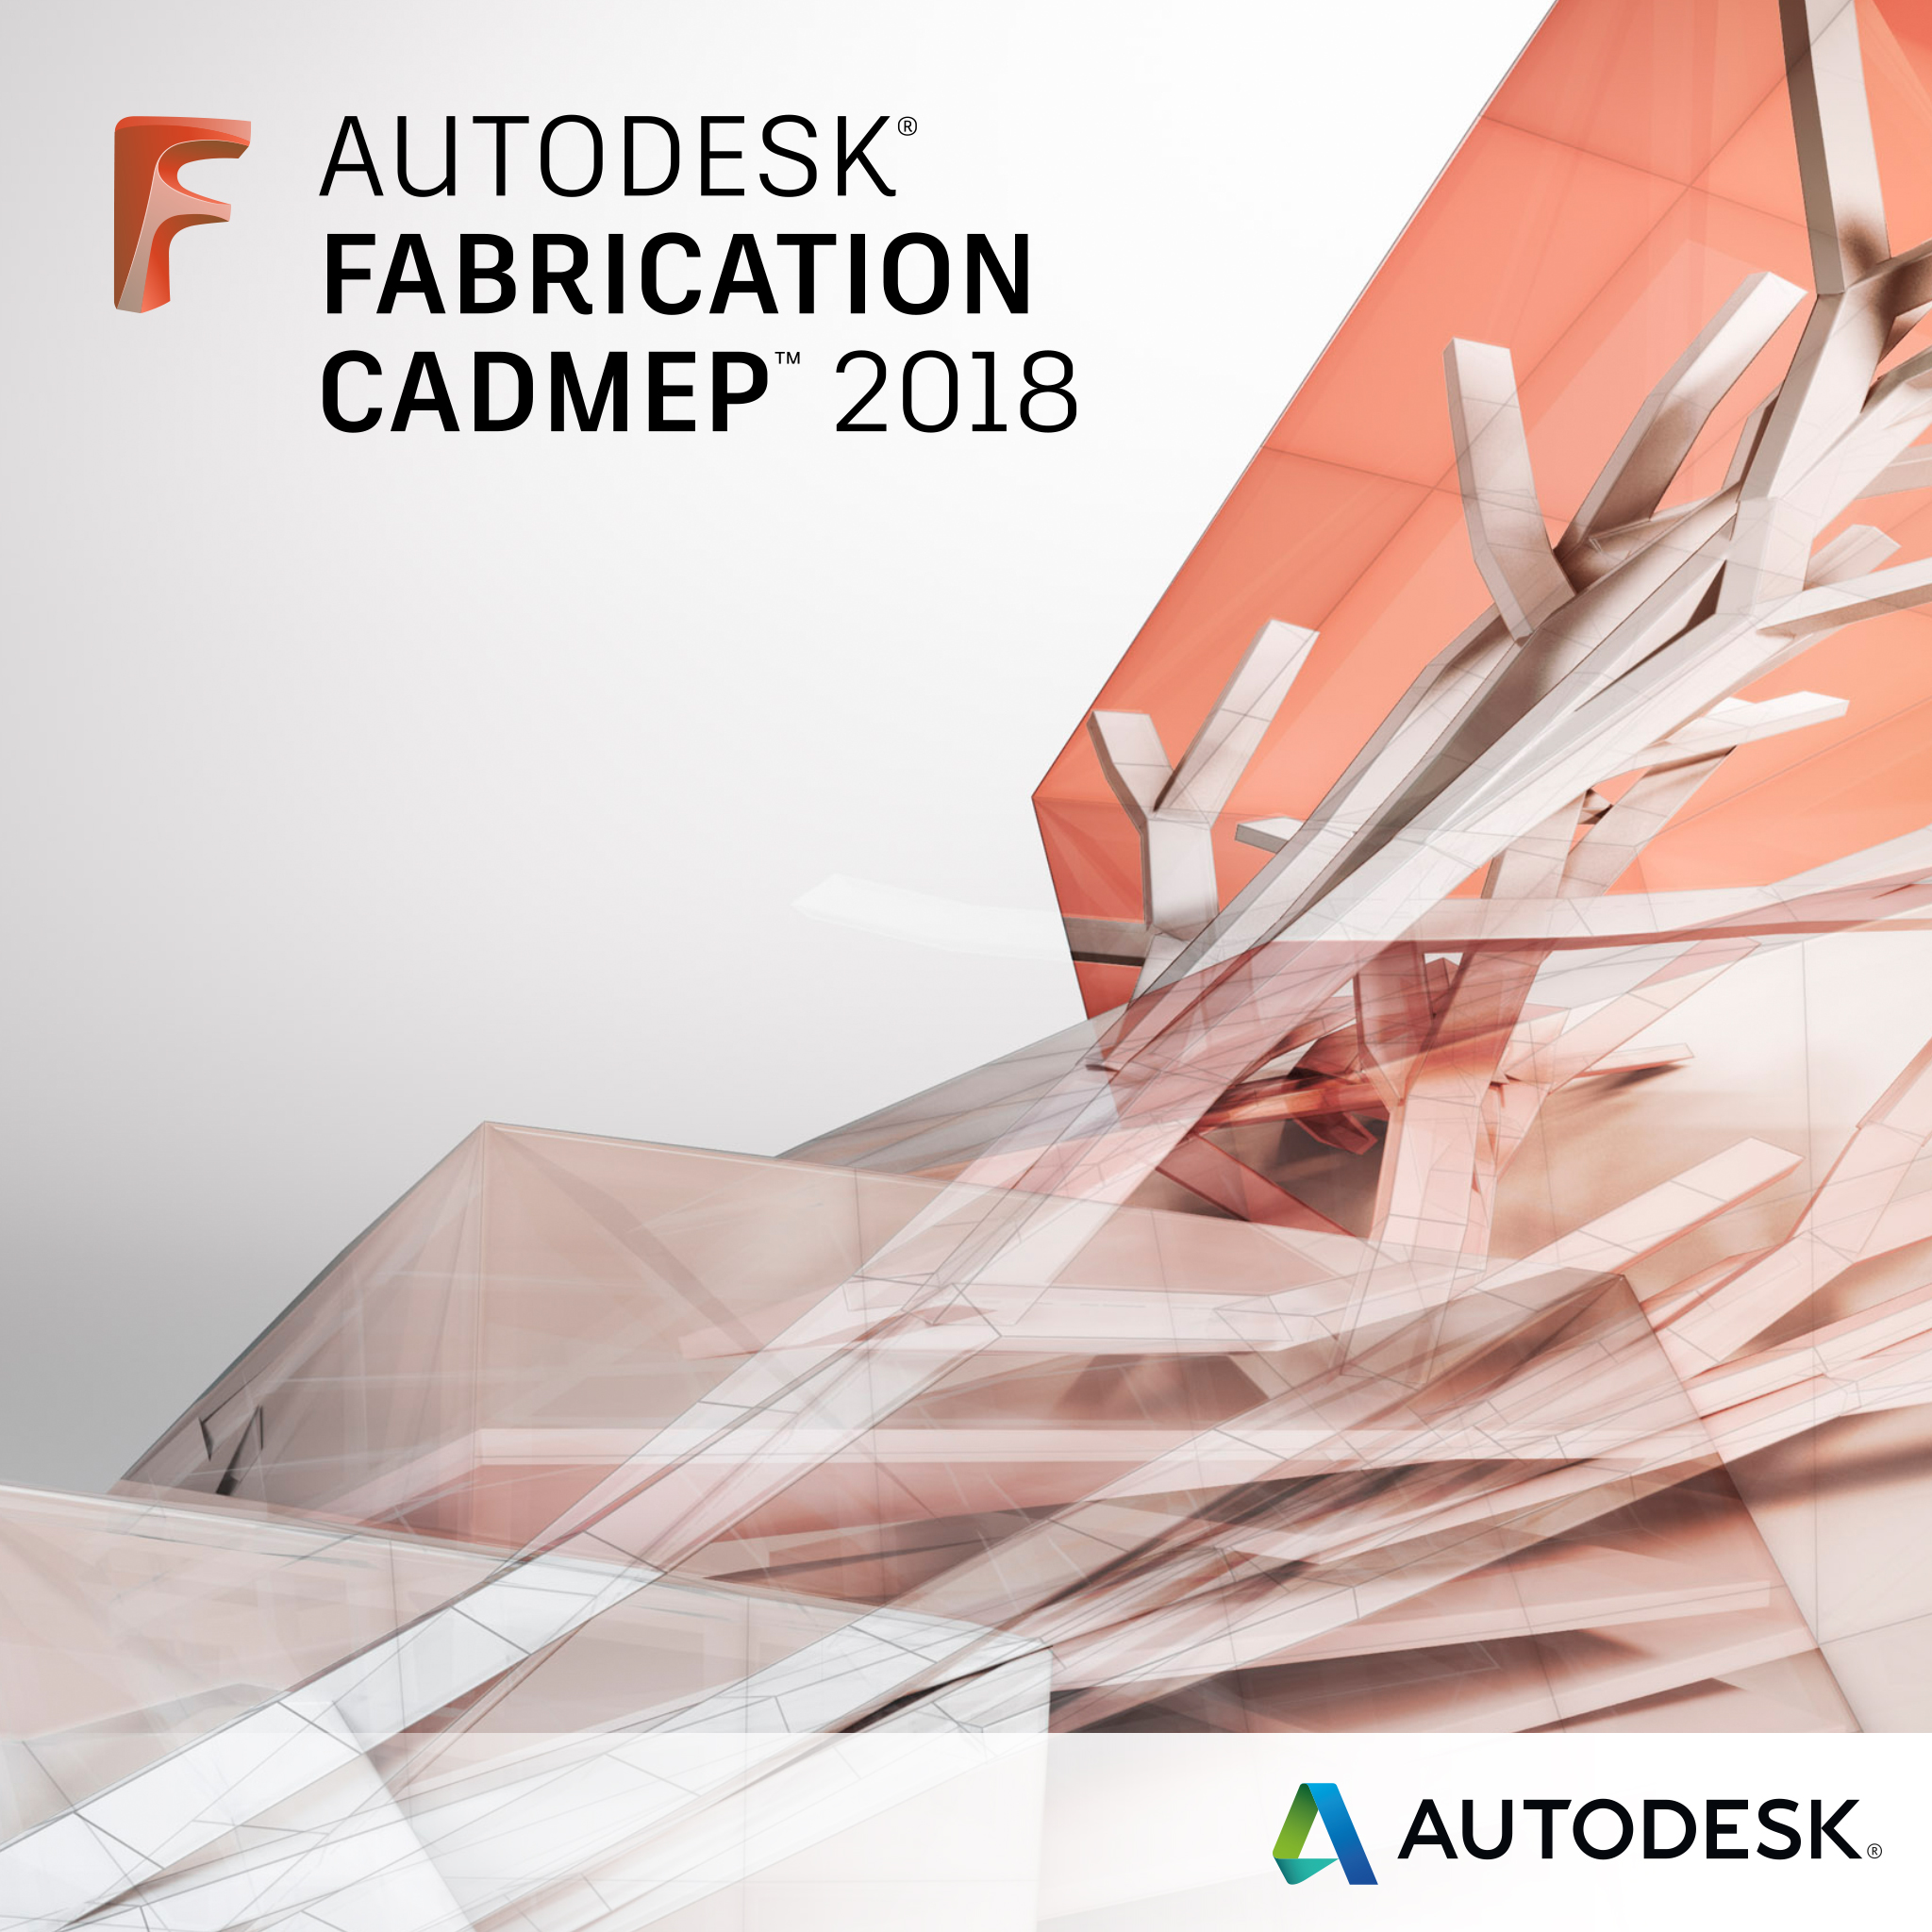 fabrication cadmep 2018 badge 2048px